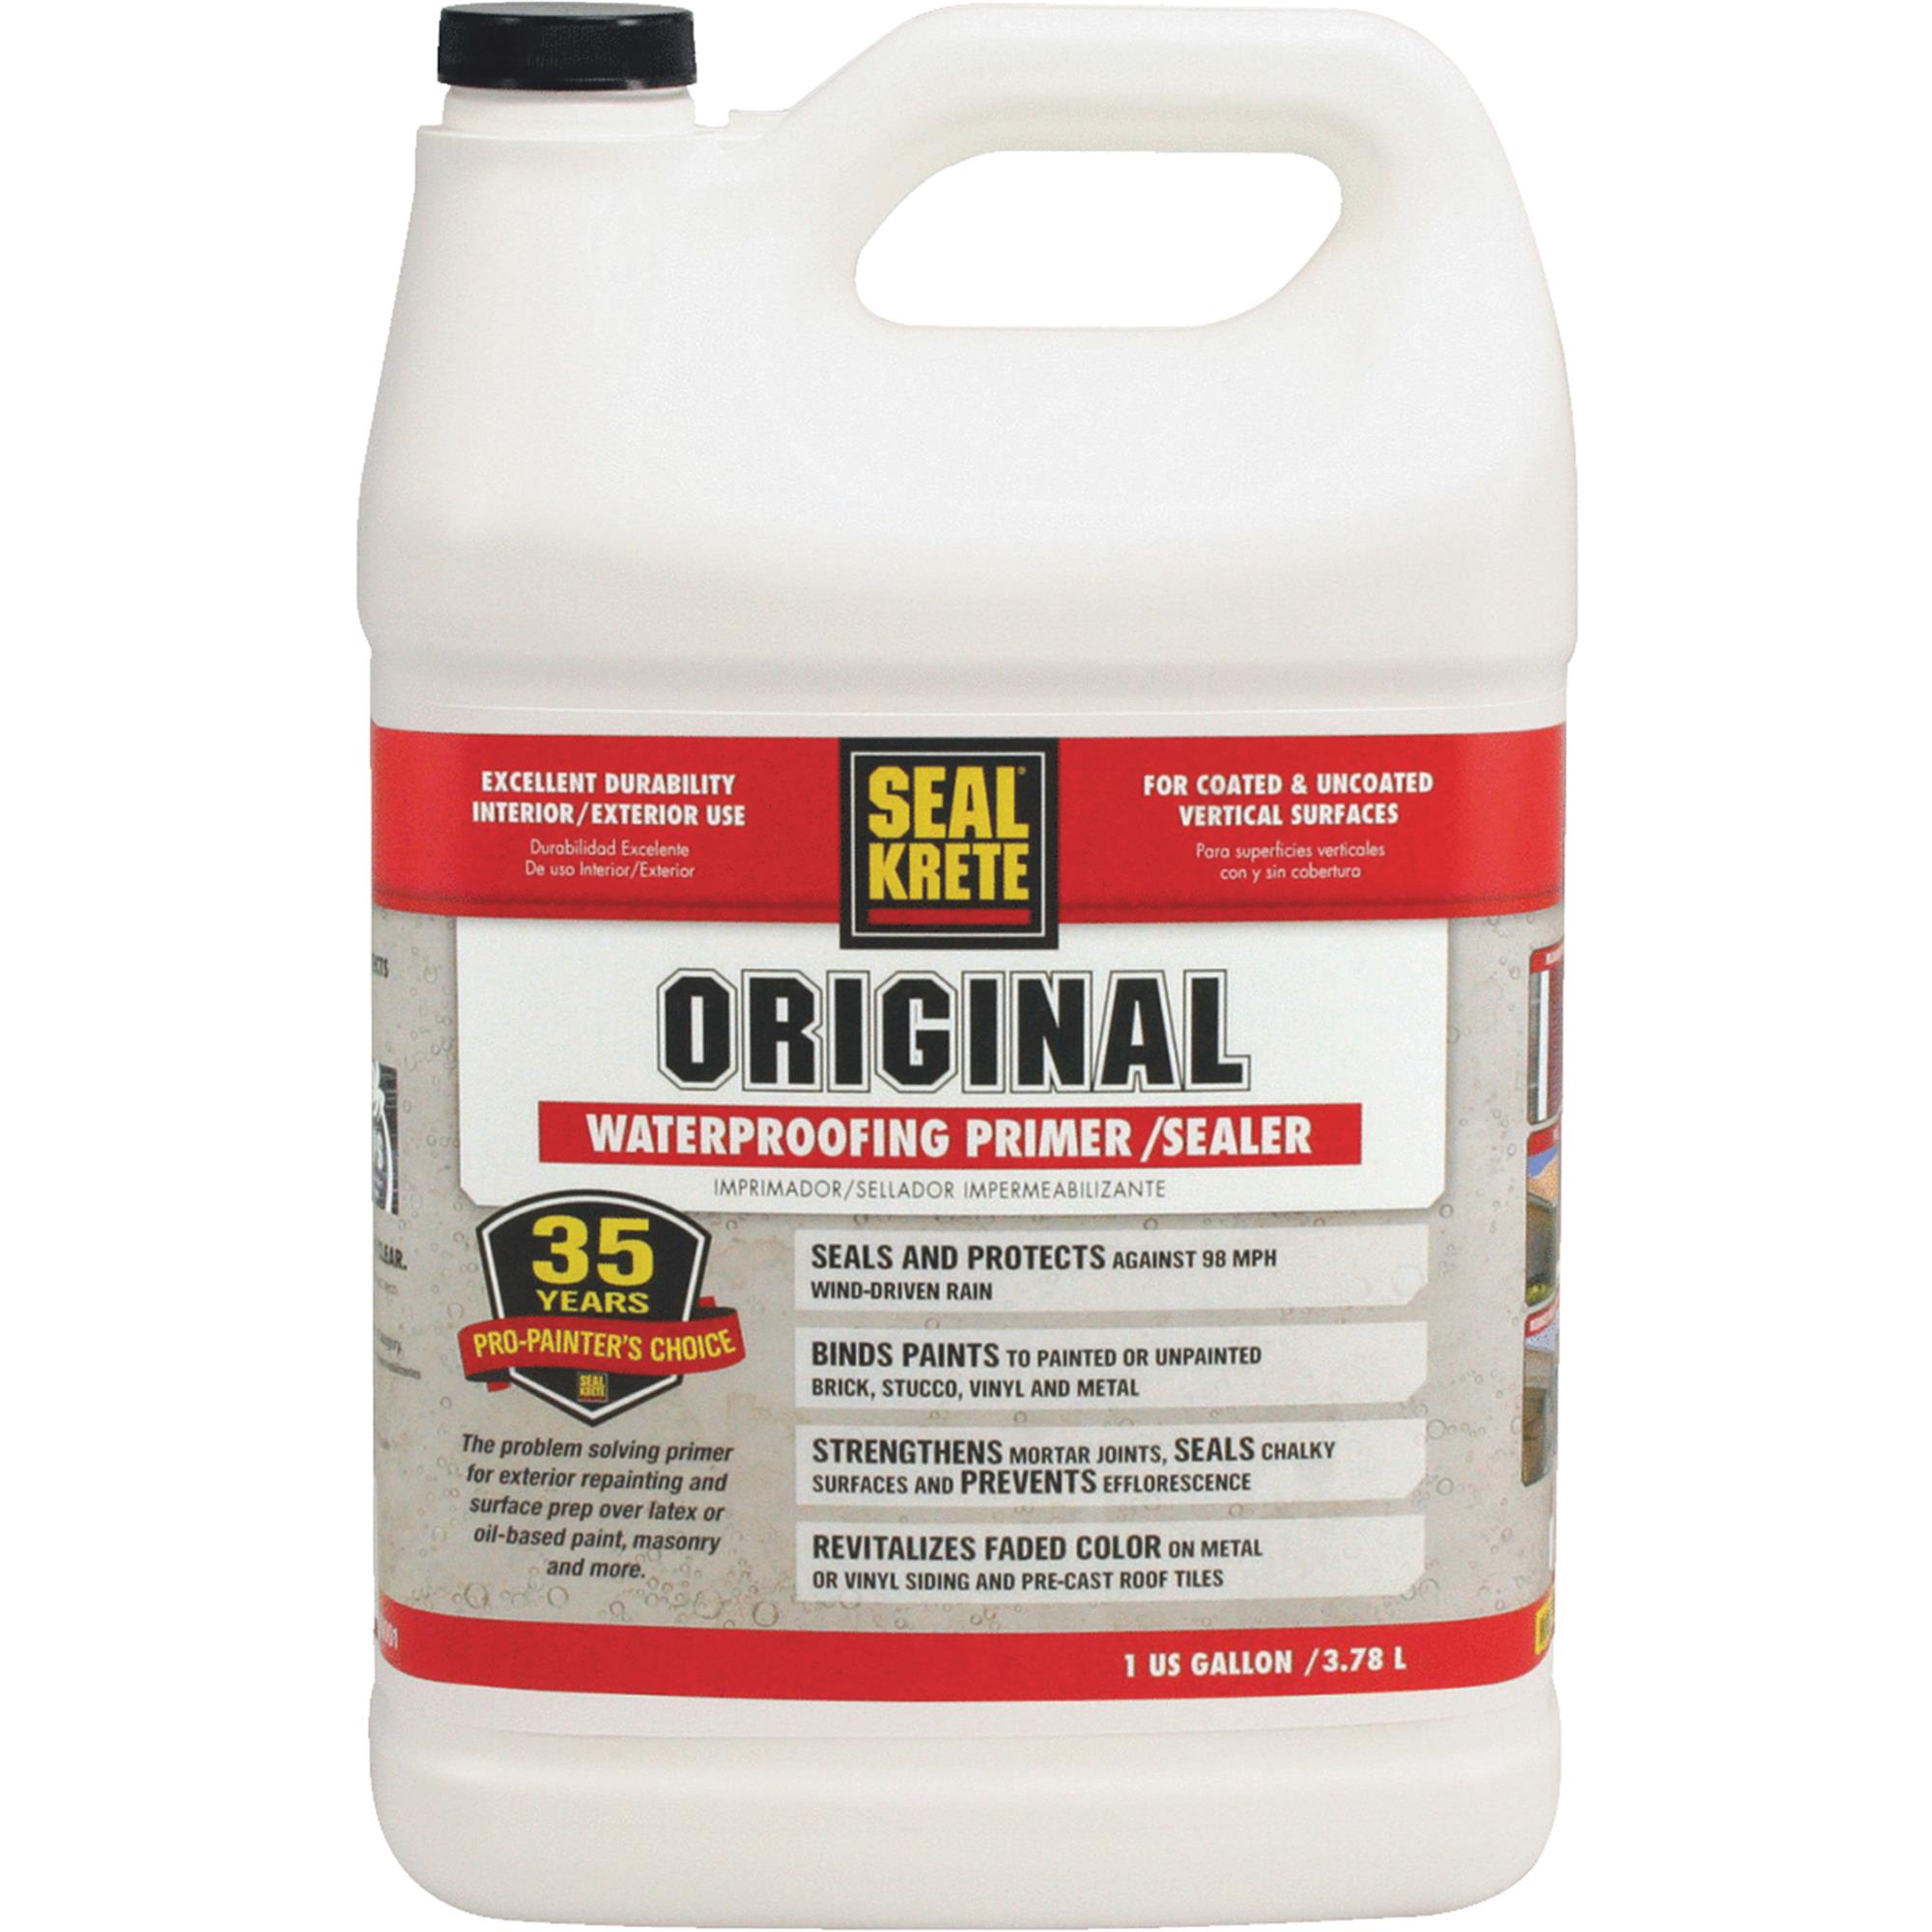 SEAL KRETE ORIGINAL All-Purpose Waterproofer Gallon